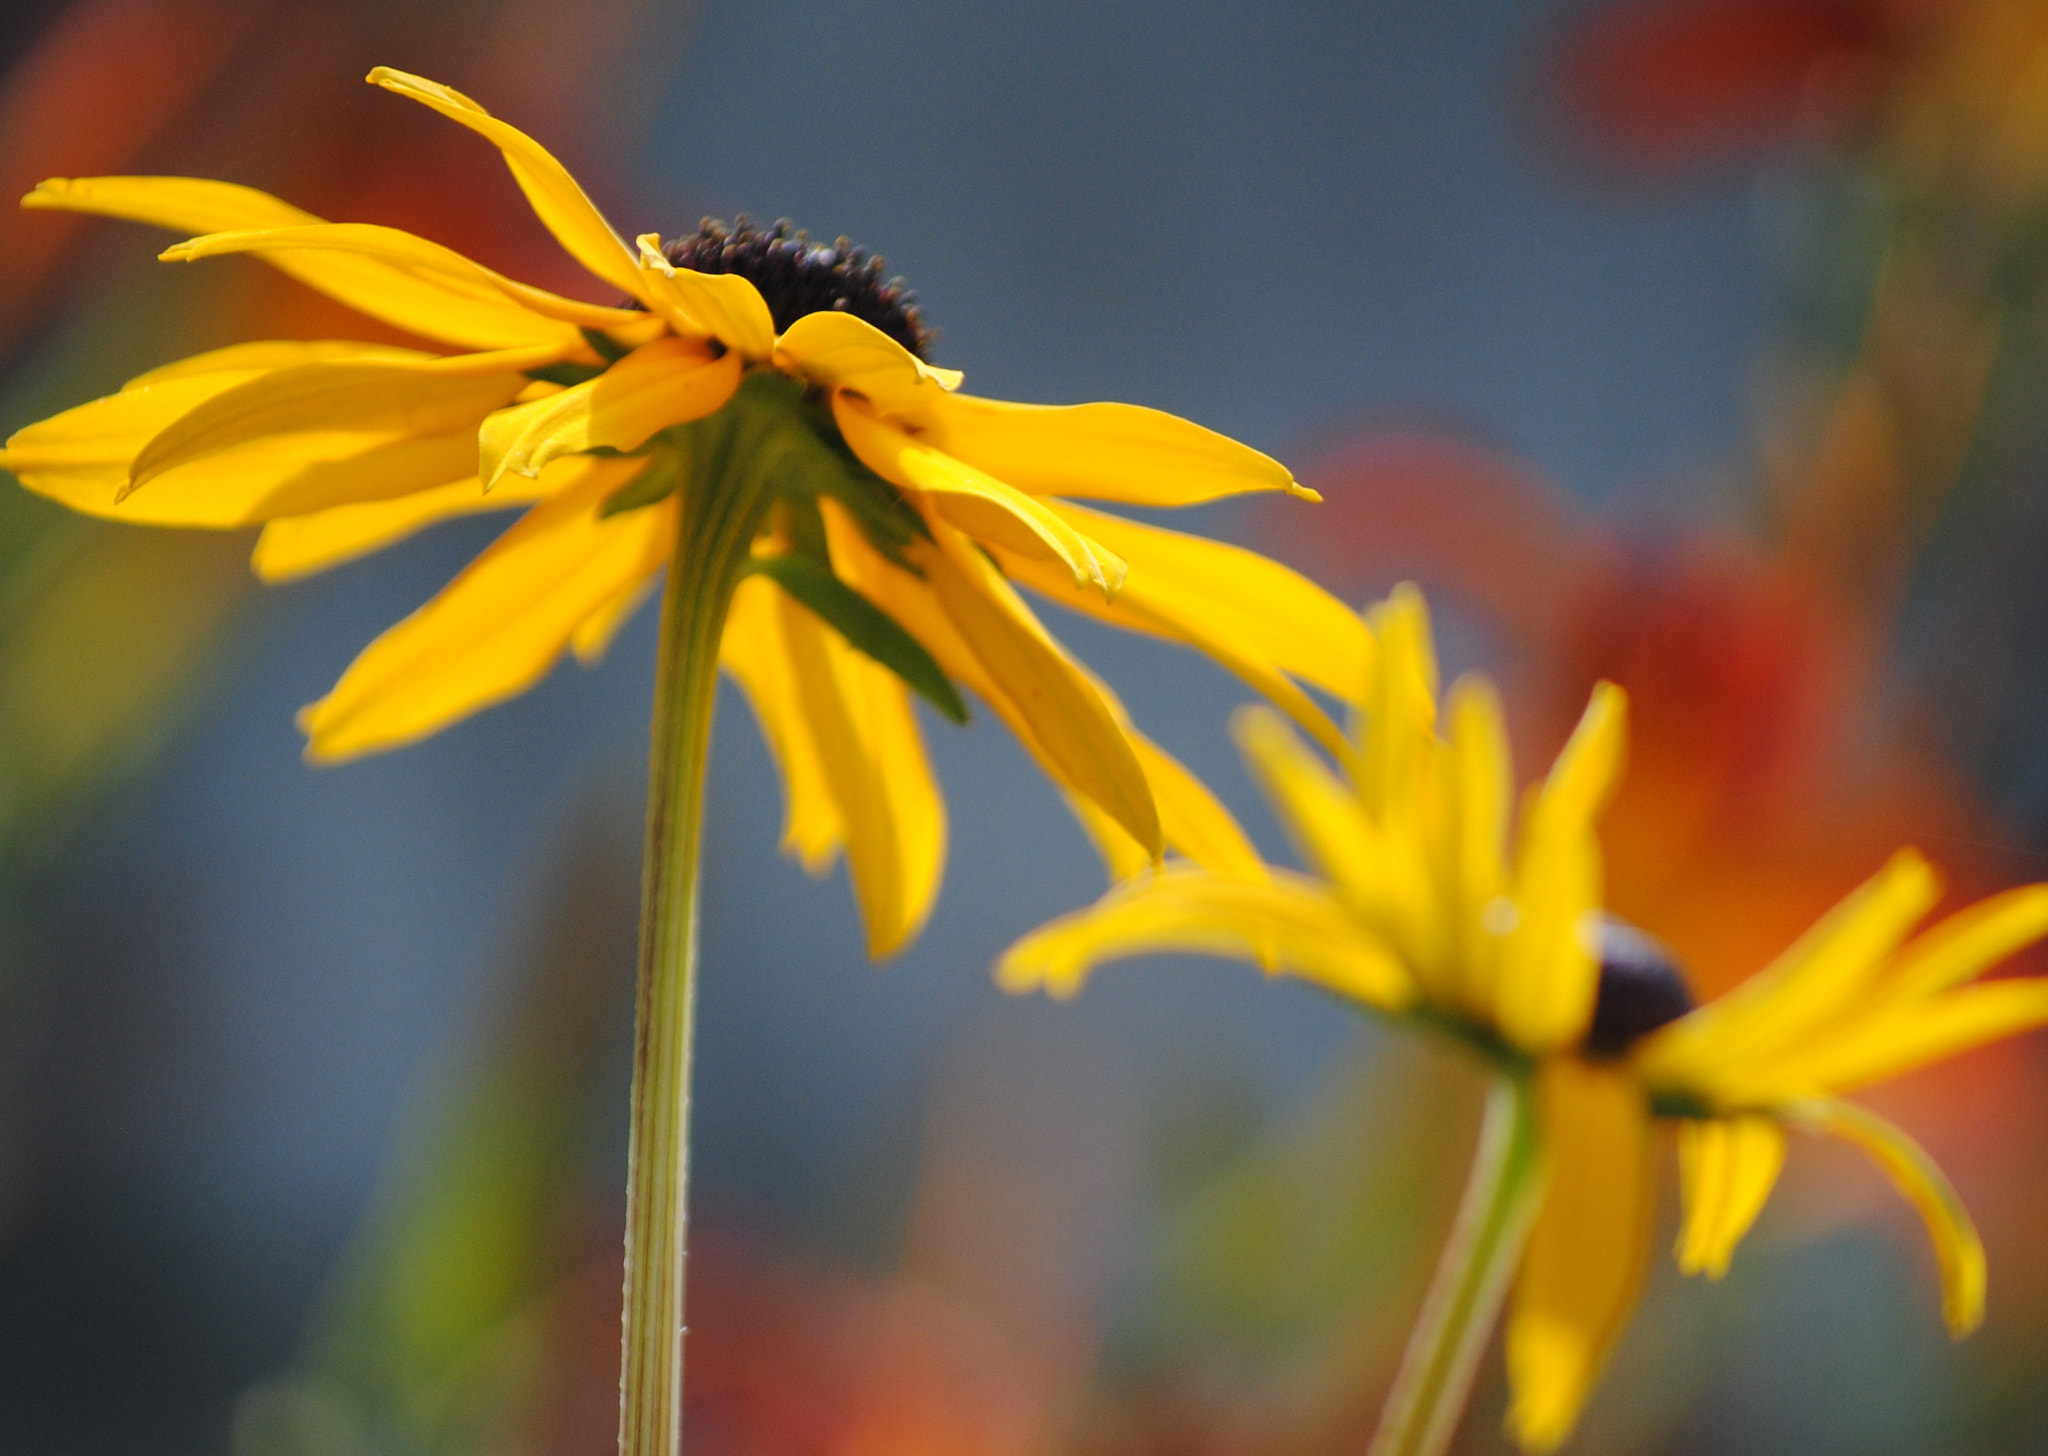 Photograph Yellow daisies by Lori Conklin on 500px